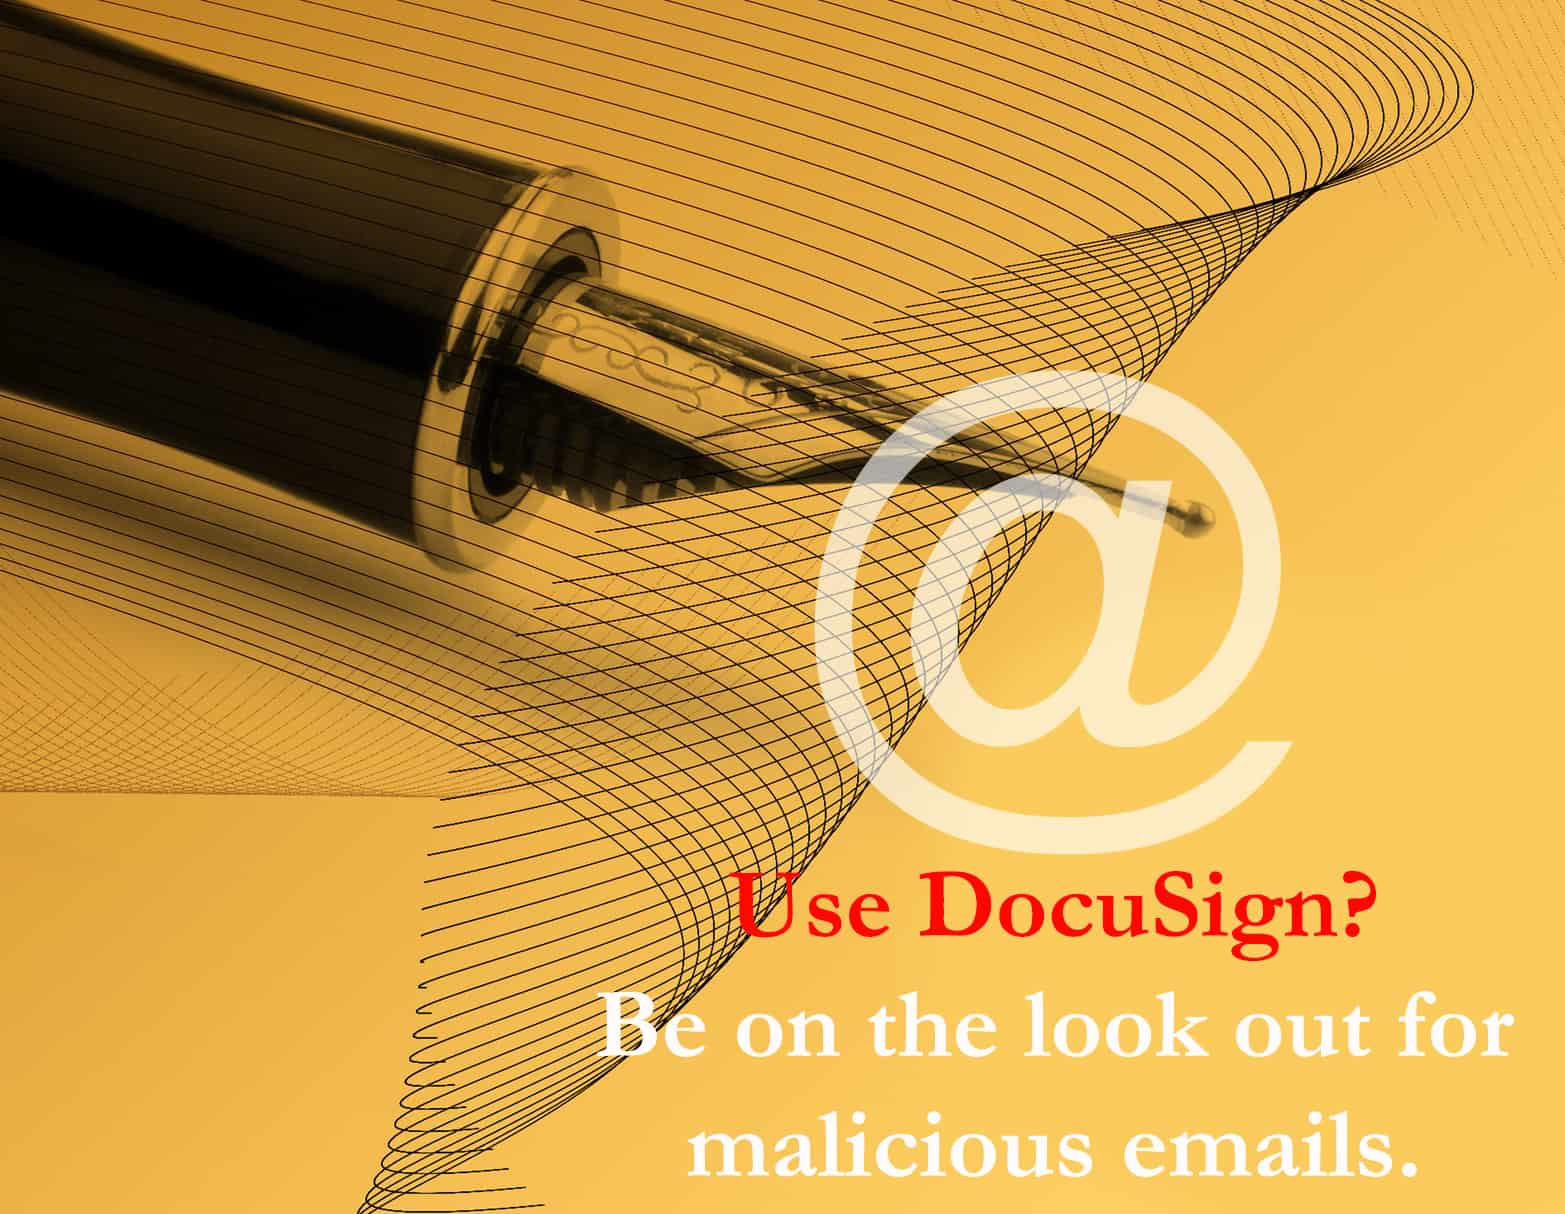 Blog page 2 of 19 bancorp insurance call 800 452 6826 beware of hacked docusign emails biocorpaavc Image collections